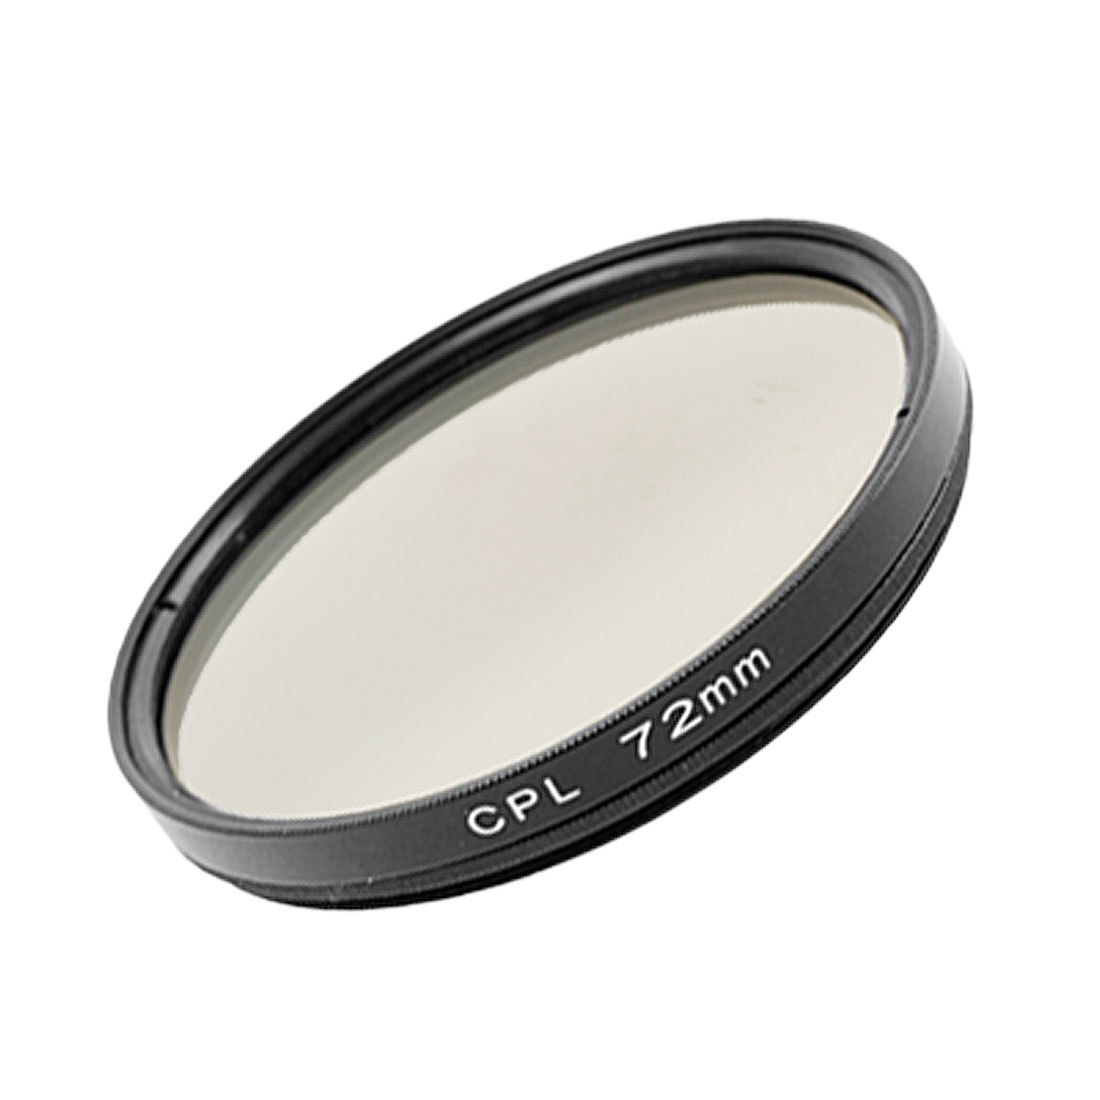 Keep 72mm Camera CPL Circular Polarizer Lens Filter